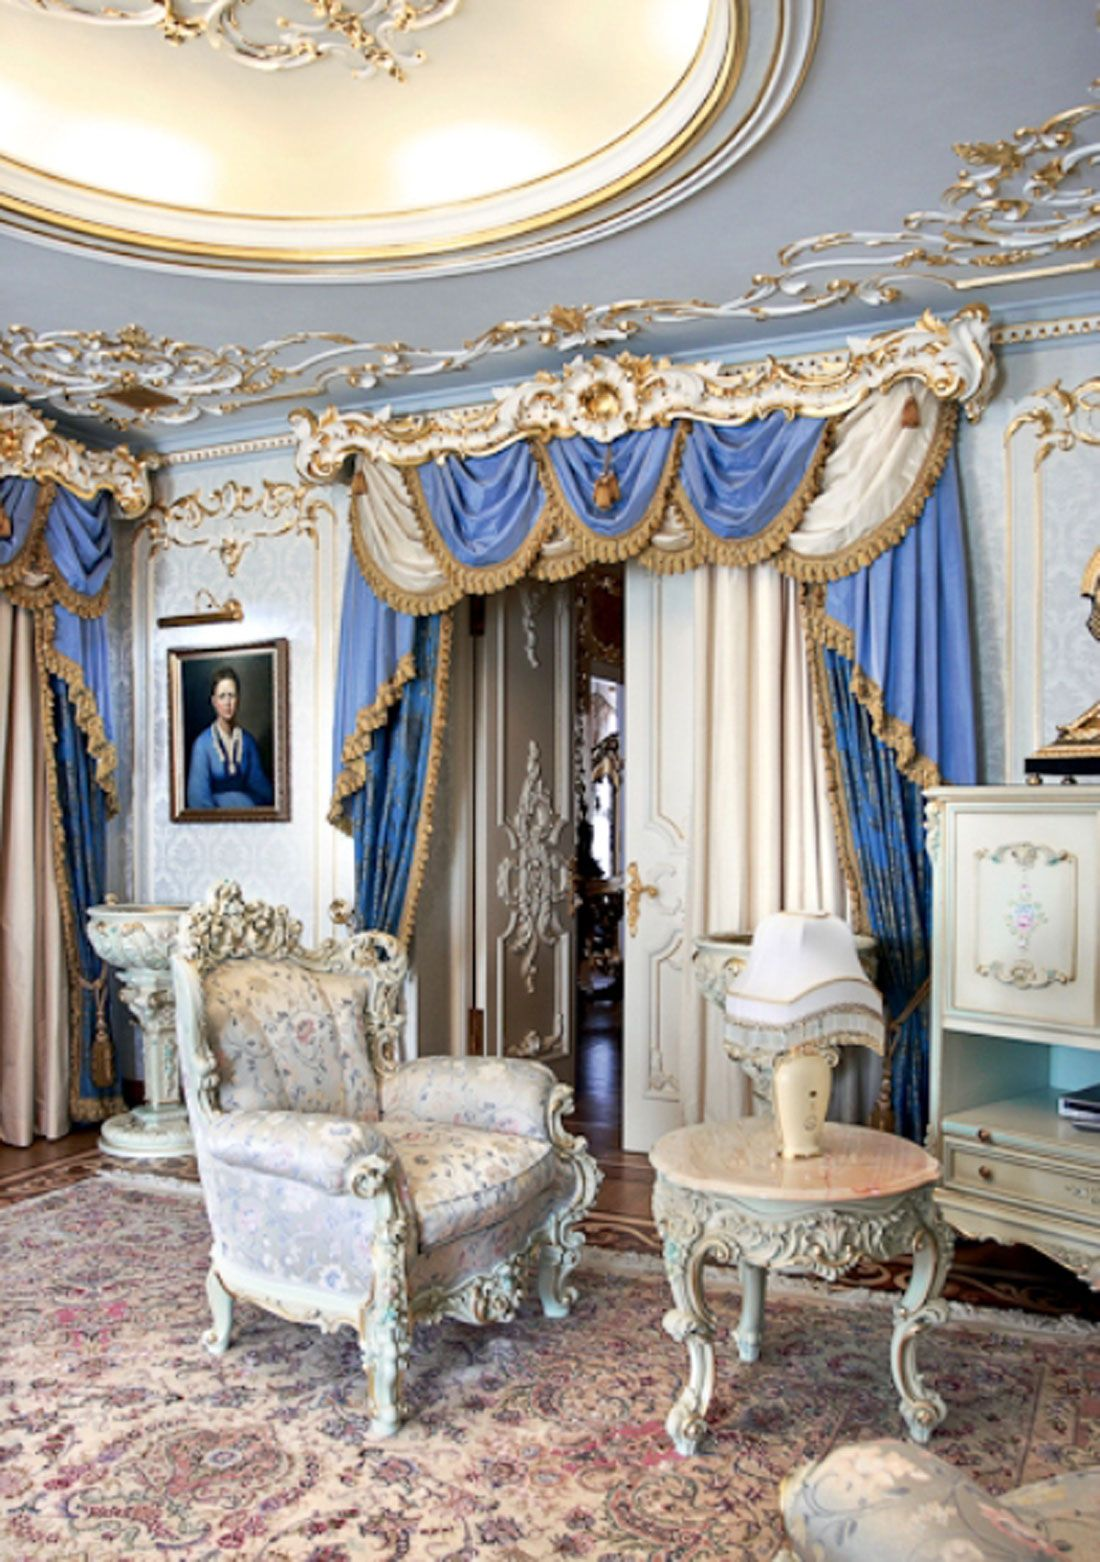 Muebles Estilo Barroco Royal Room Dream House Pinterest